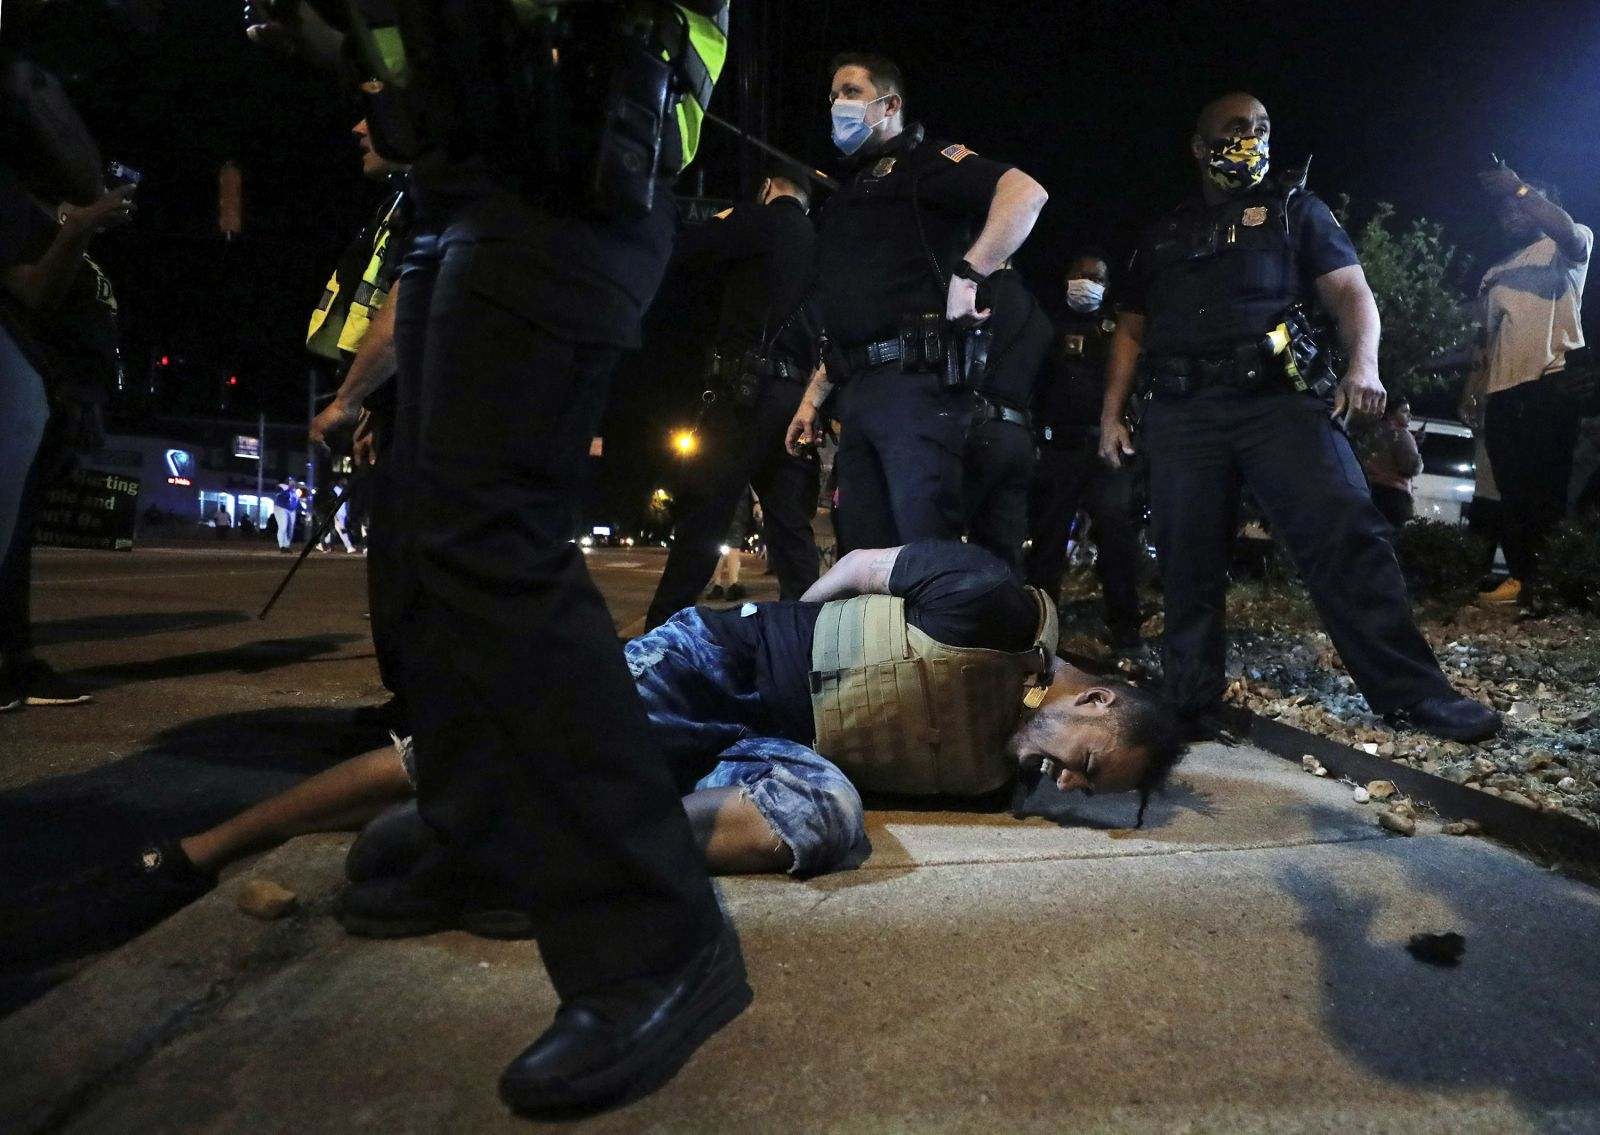 A protester winces in pain after being sprayed with pepper spray by police during a demonstration near the Memphis Police Department precinct in Memphis, Tennessee, on May 28.